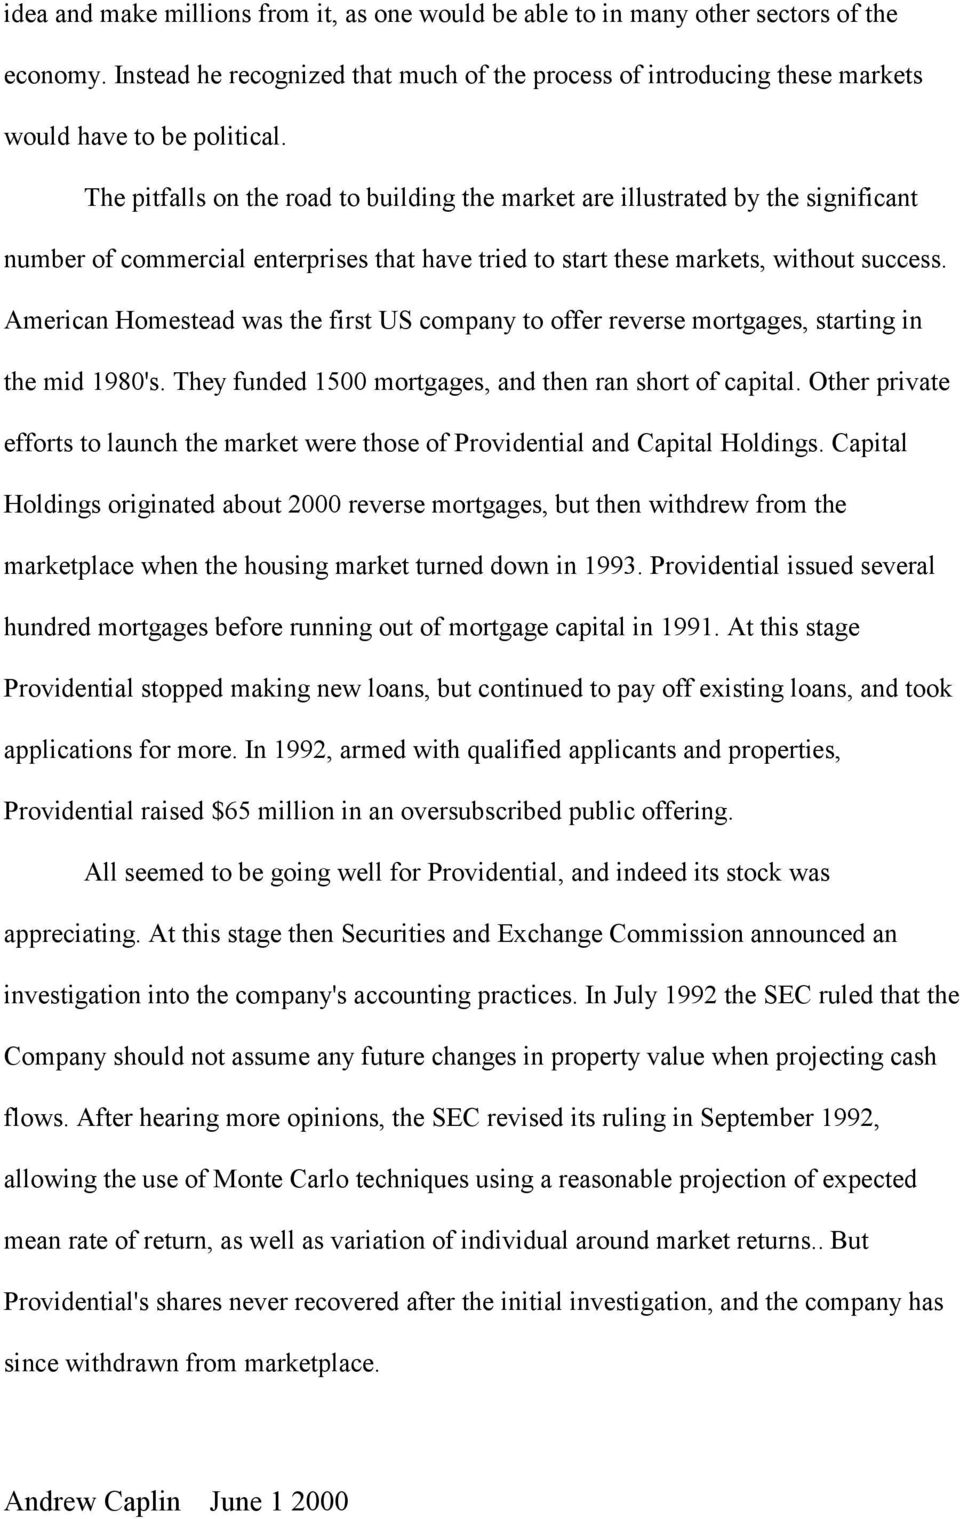 American Homestead was the first US company to offer reverse mortgages, starting in the mid 1980's. They funded 1500 mortgages, and then ran short of capital.